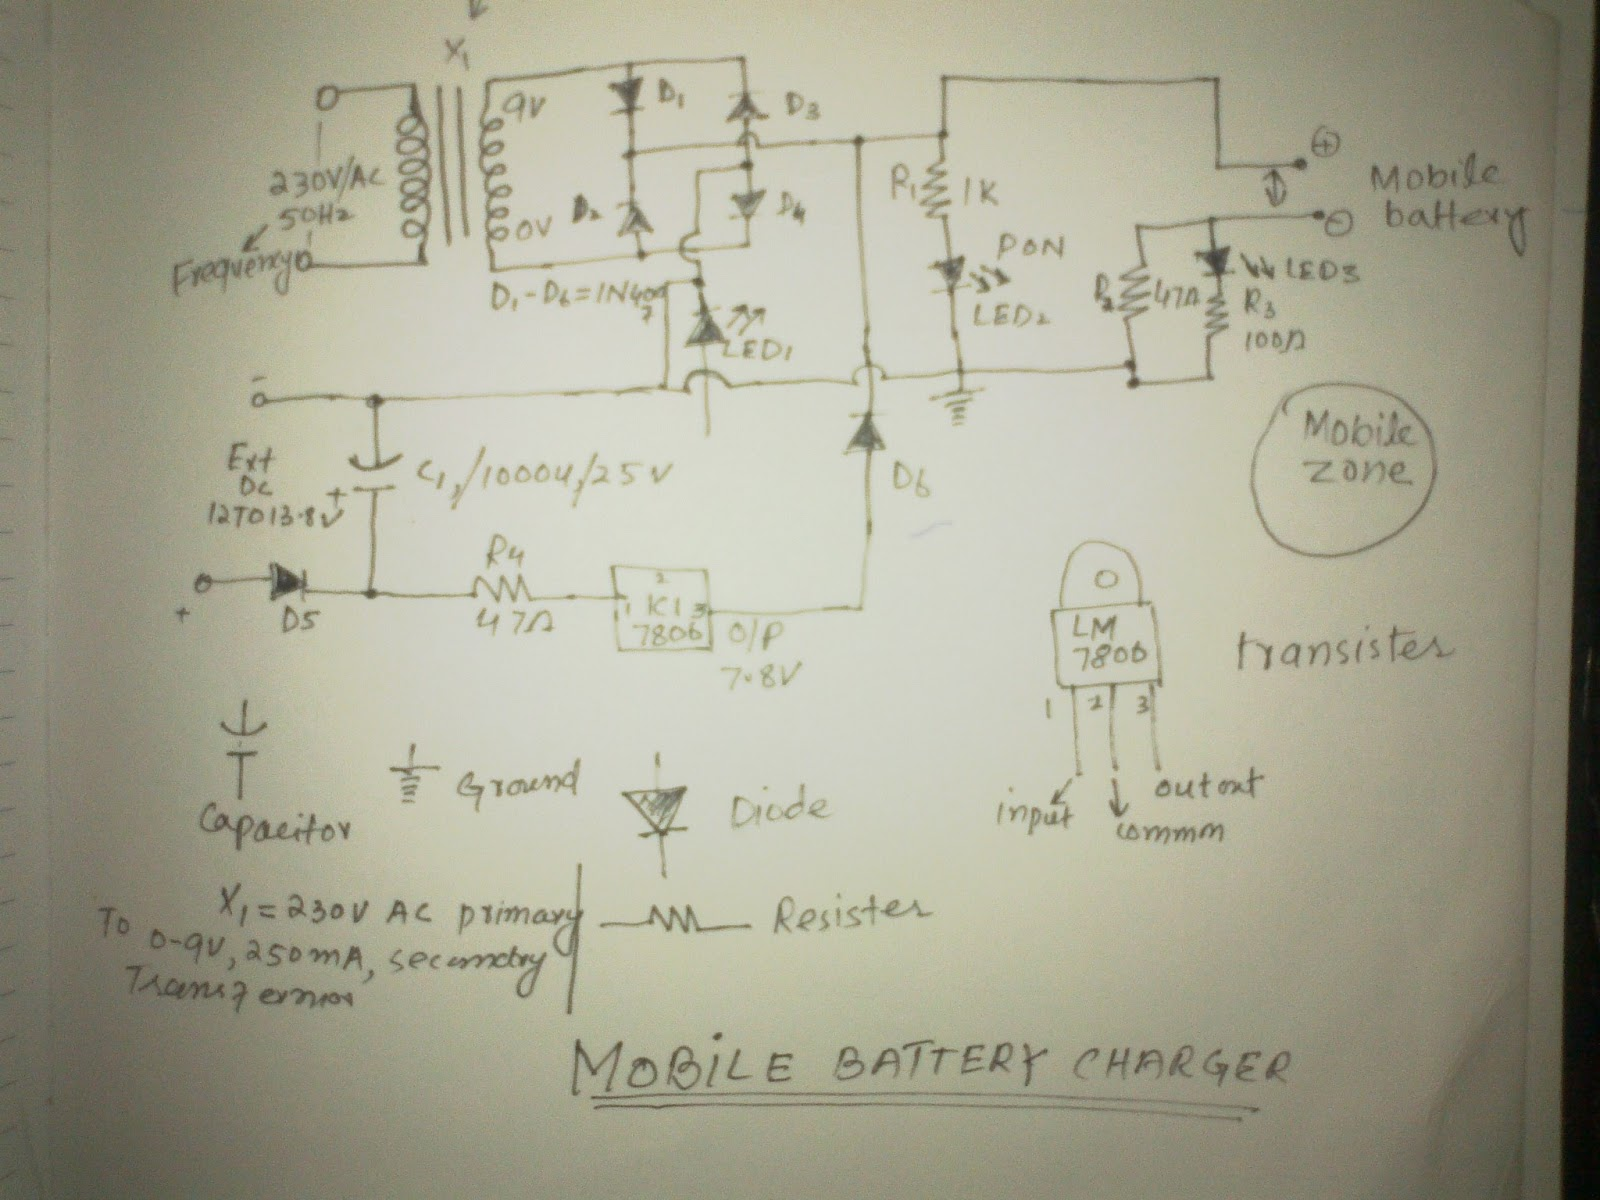 Circuit diagram of Mobile phone charger